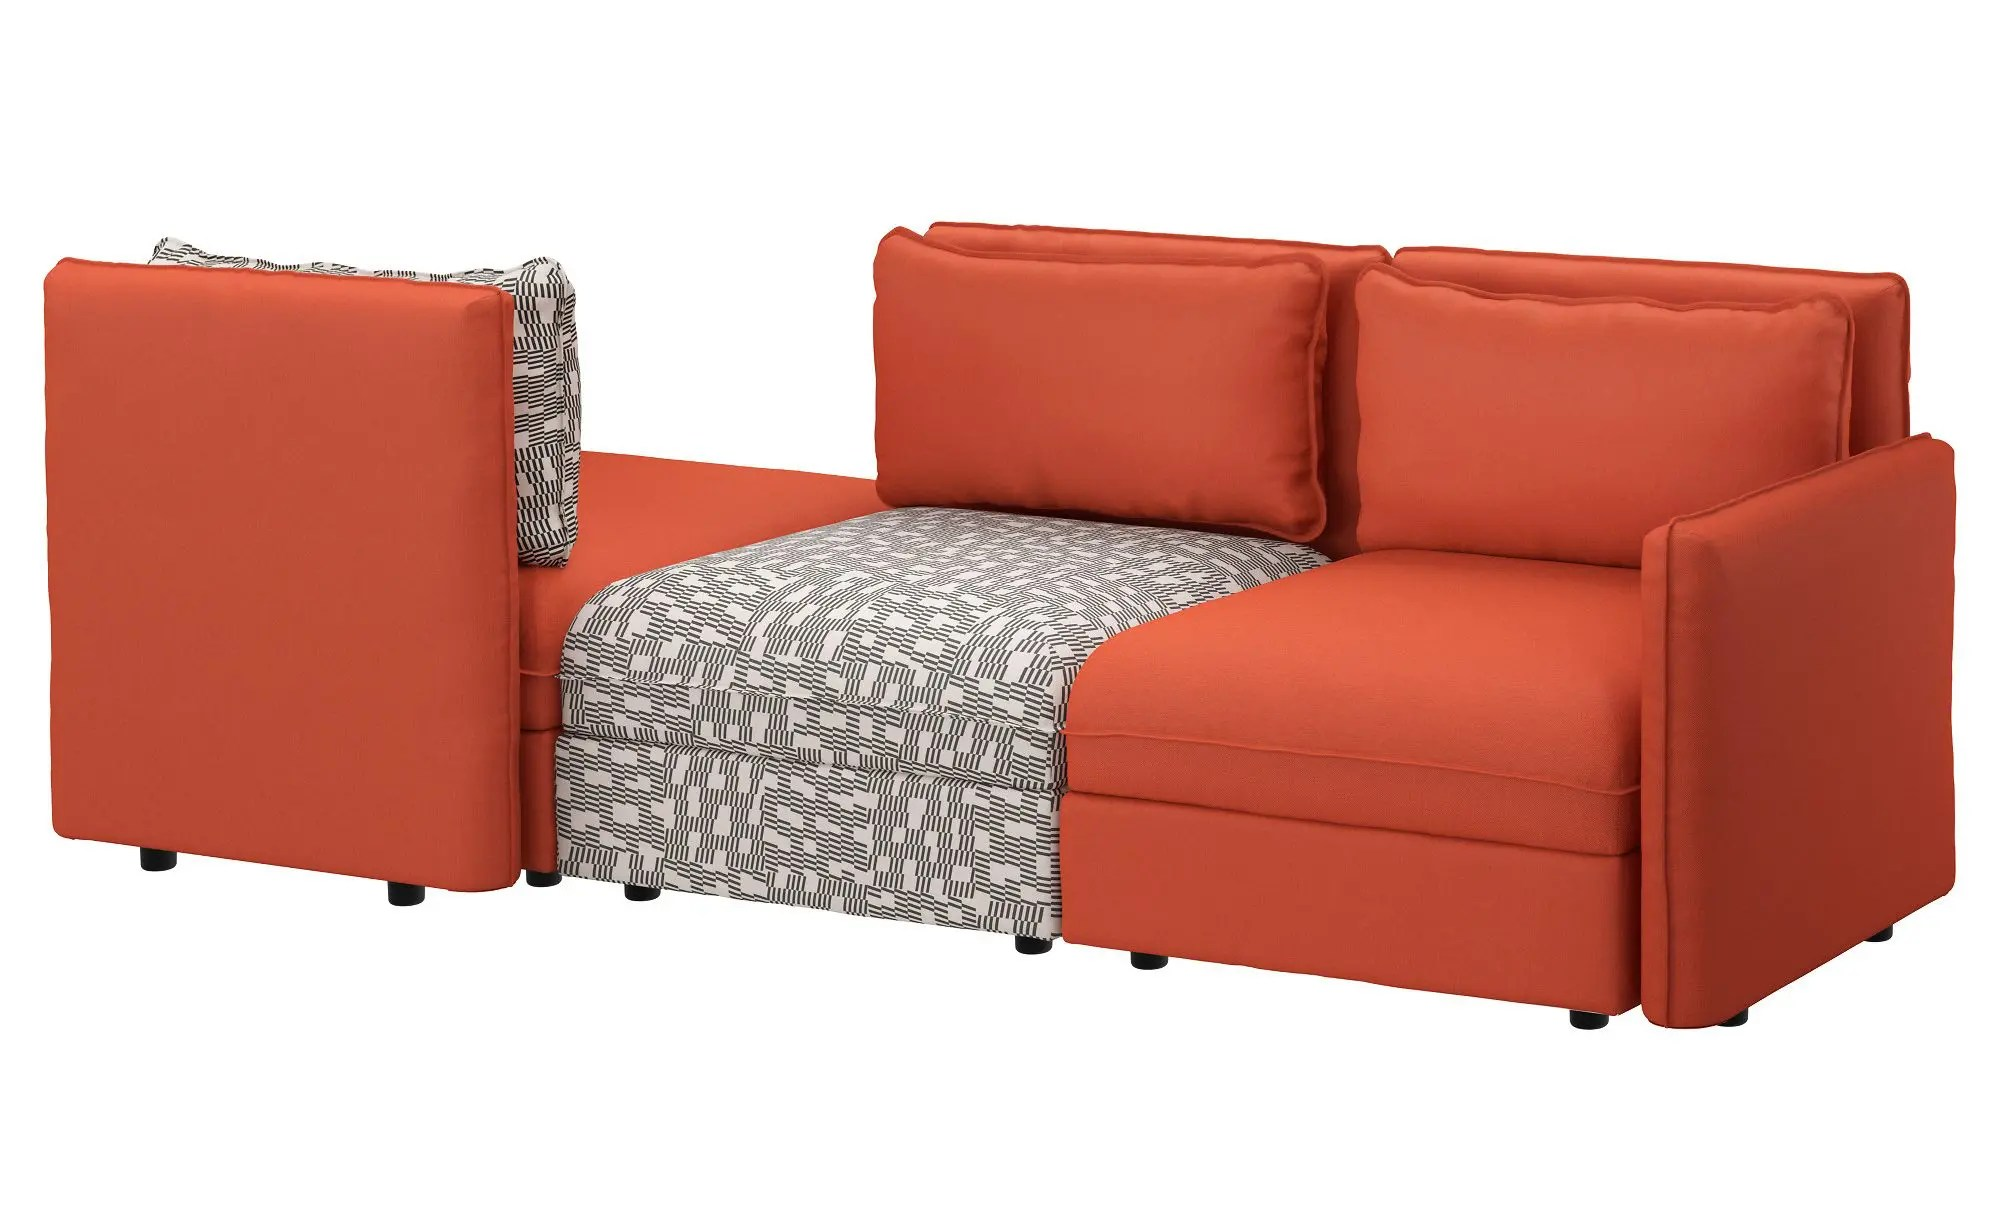 Vallentuna 4 Seat Modular Sofa With 3 Beds Ikea Vallentuna Sofa Review Something Fishy This Way Comes